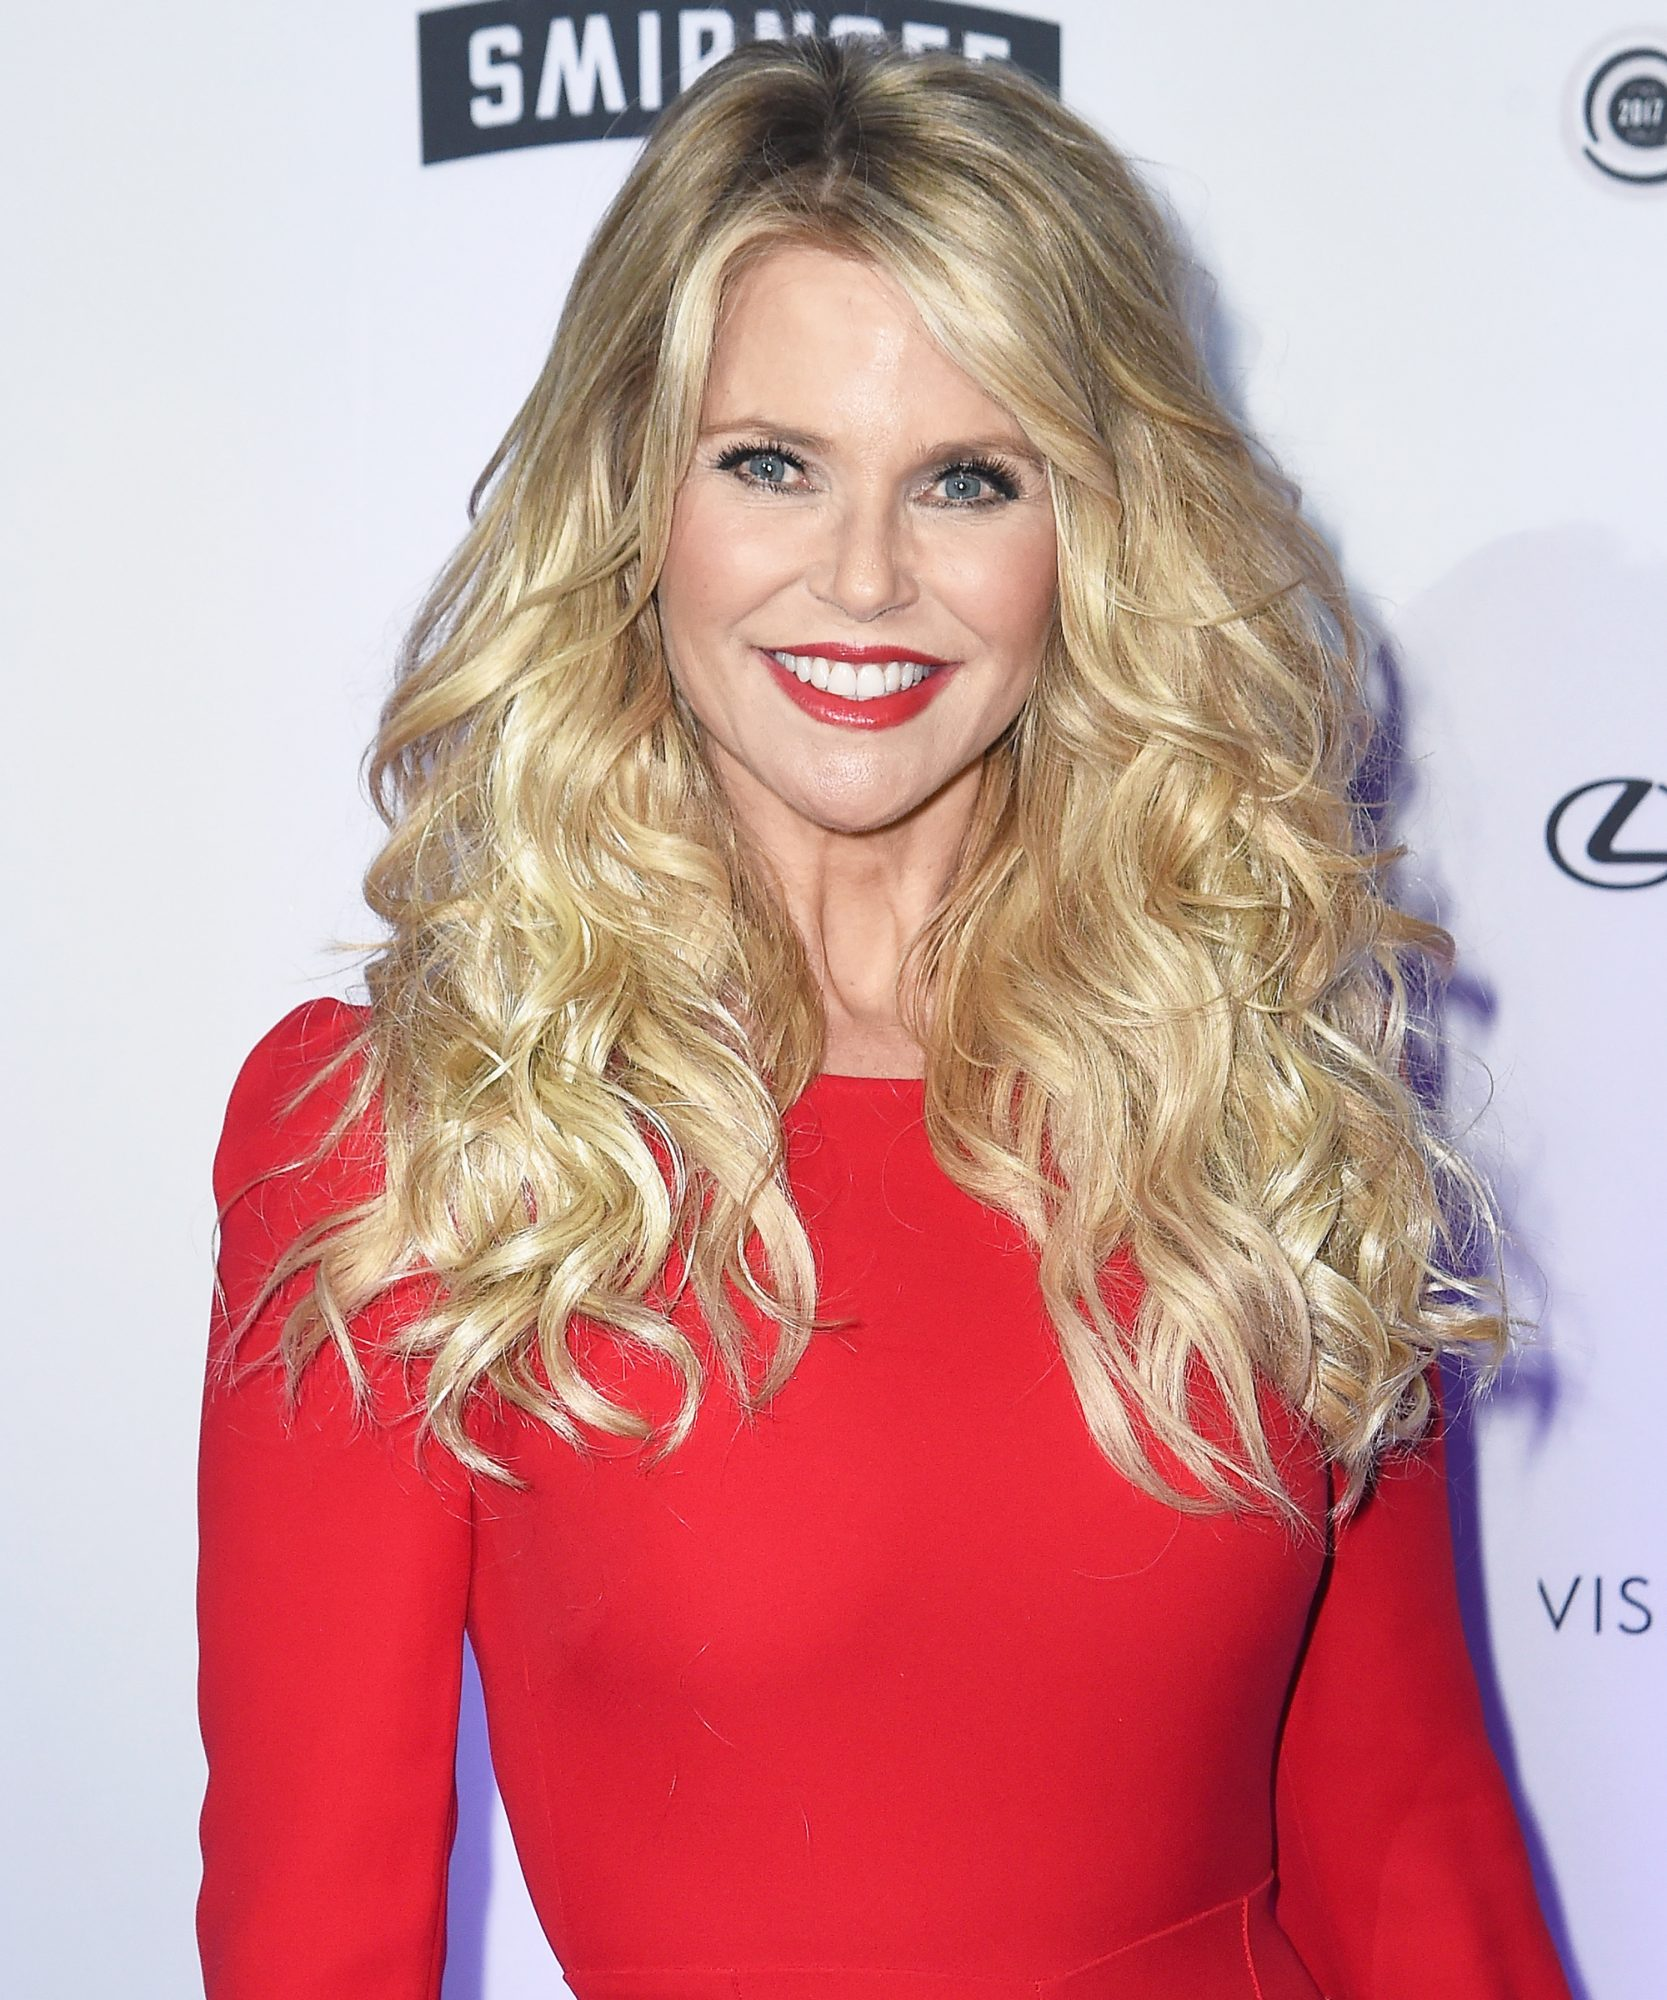 Christie Brinkley Says She Wears a Bikini While Performing This Household Chore